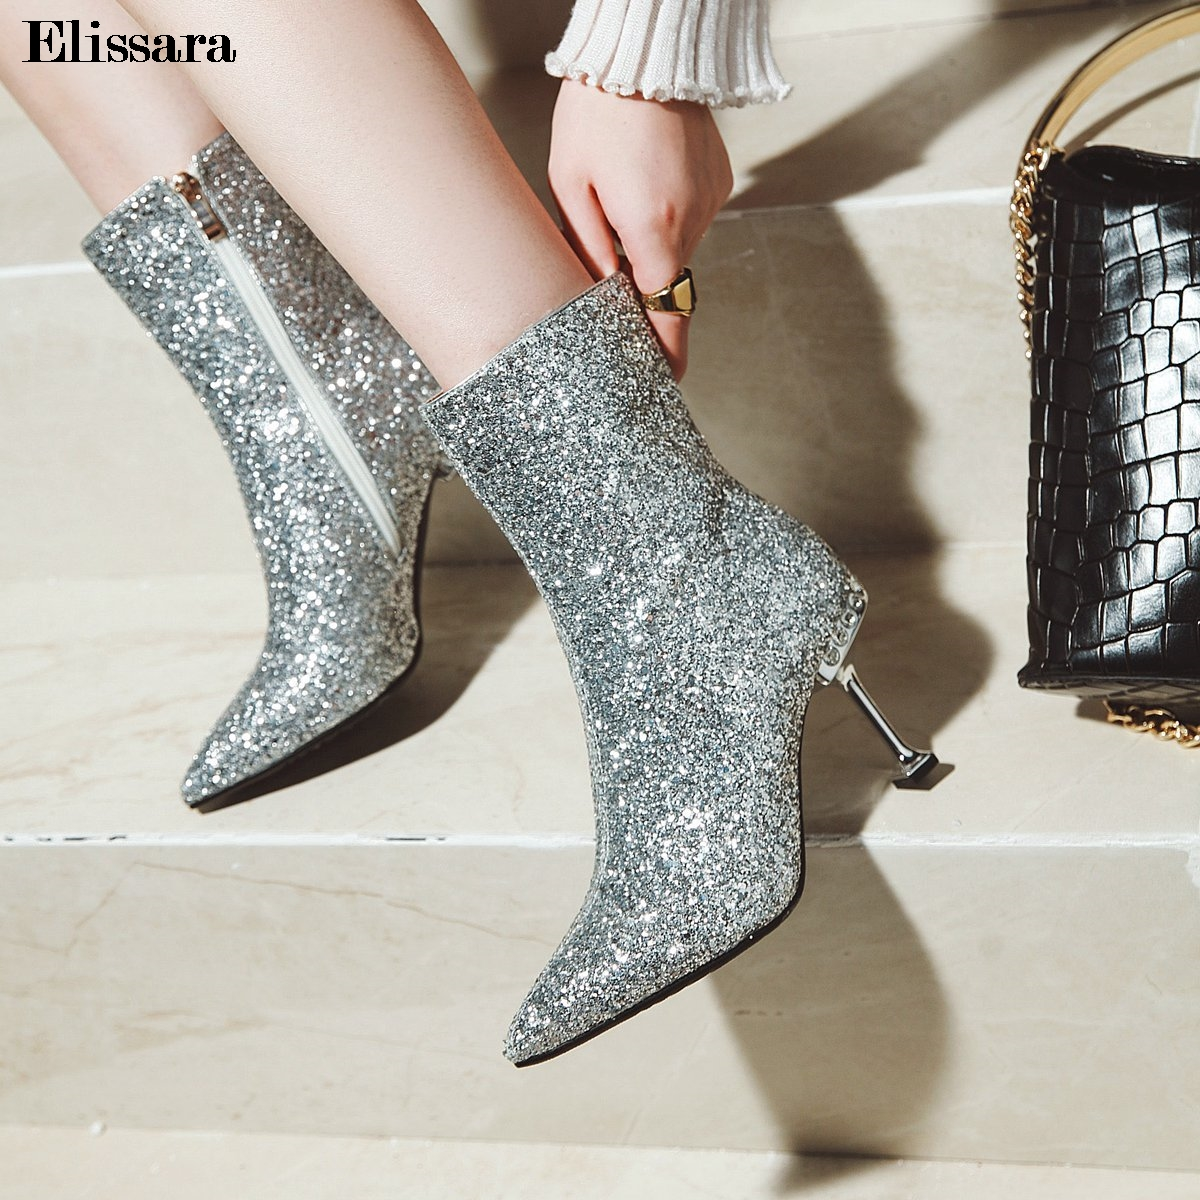 Women High Heels Ankle Boots Shoes Woman Glitter Bling Zip Pointed Toe Party Ankle Boots Shoes Size 33-43 Elissara elissara women ankle boots women high heels boots ladies zip high quality denim pointed toe shoes plus size 33 43